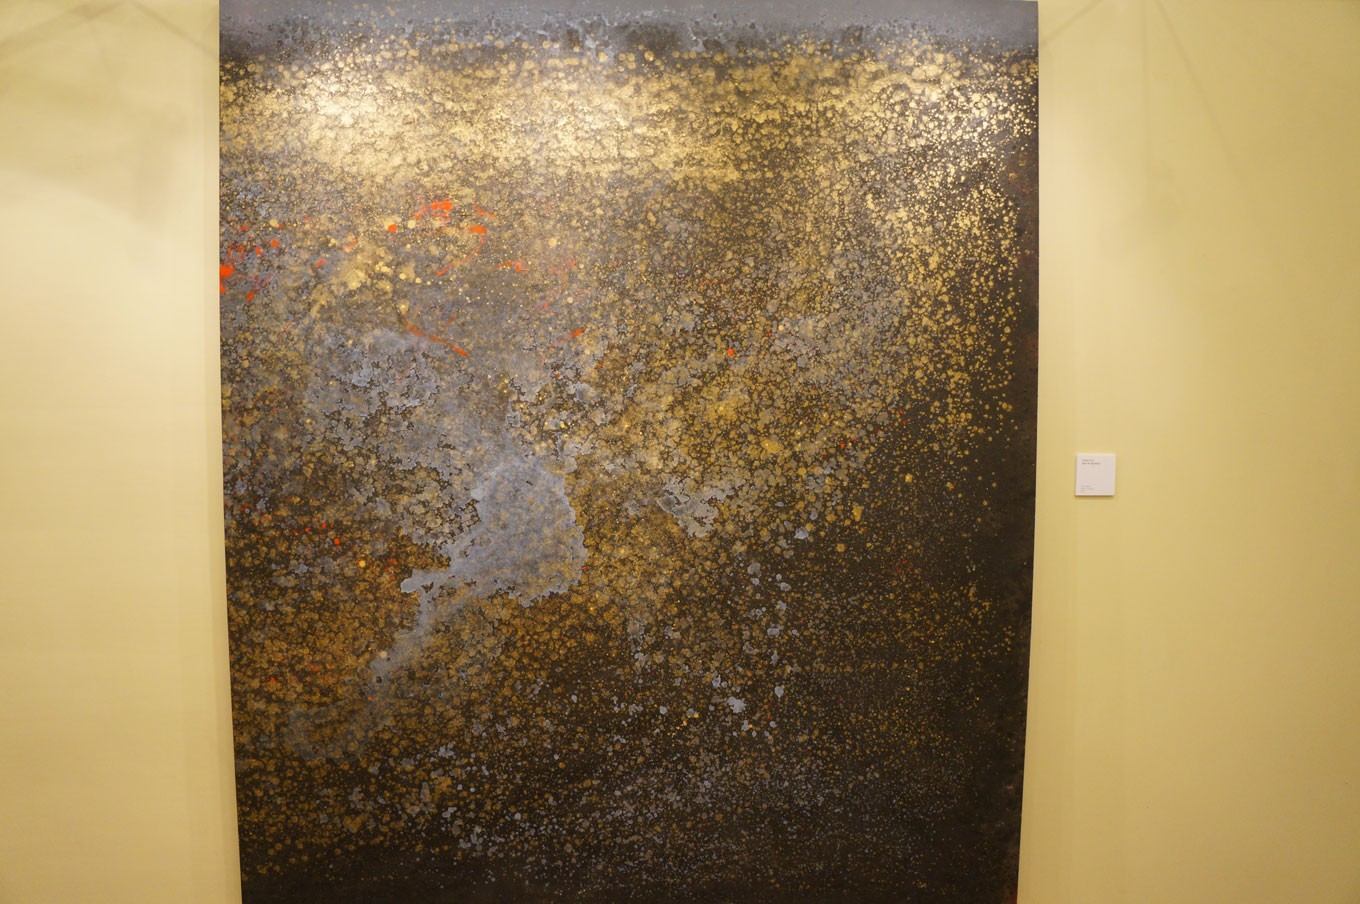 With the cosmos long being a subject of fascination, Karja gives his interpretation in the painting titled Night Sky (Big Bang), which was created in 2012.